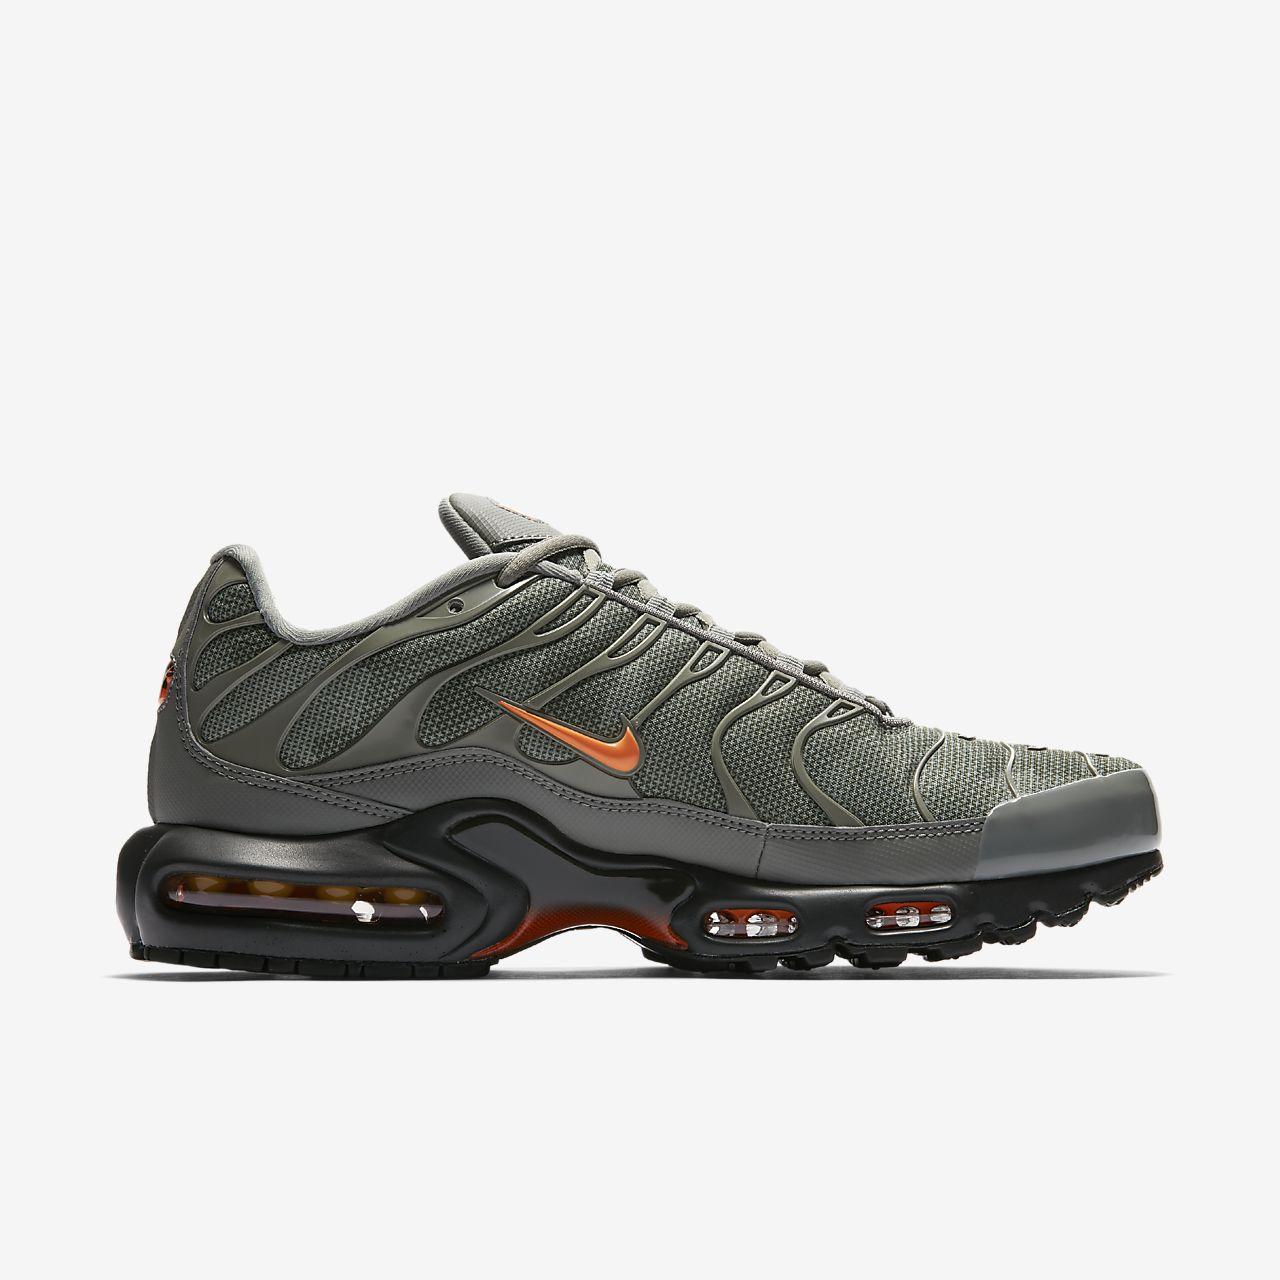 ... Nike Air Max Plus SE Men's Shoe